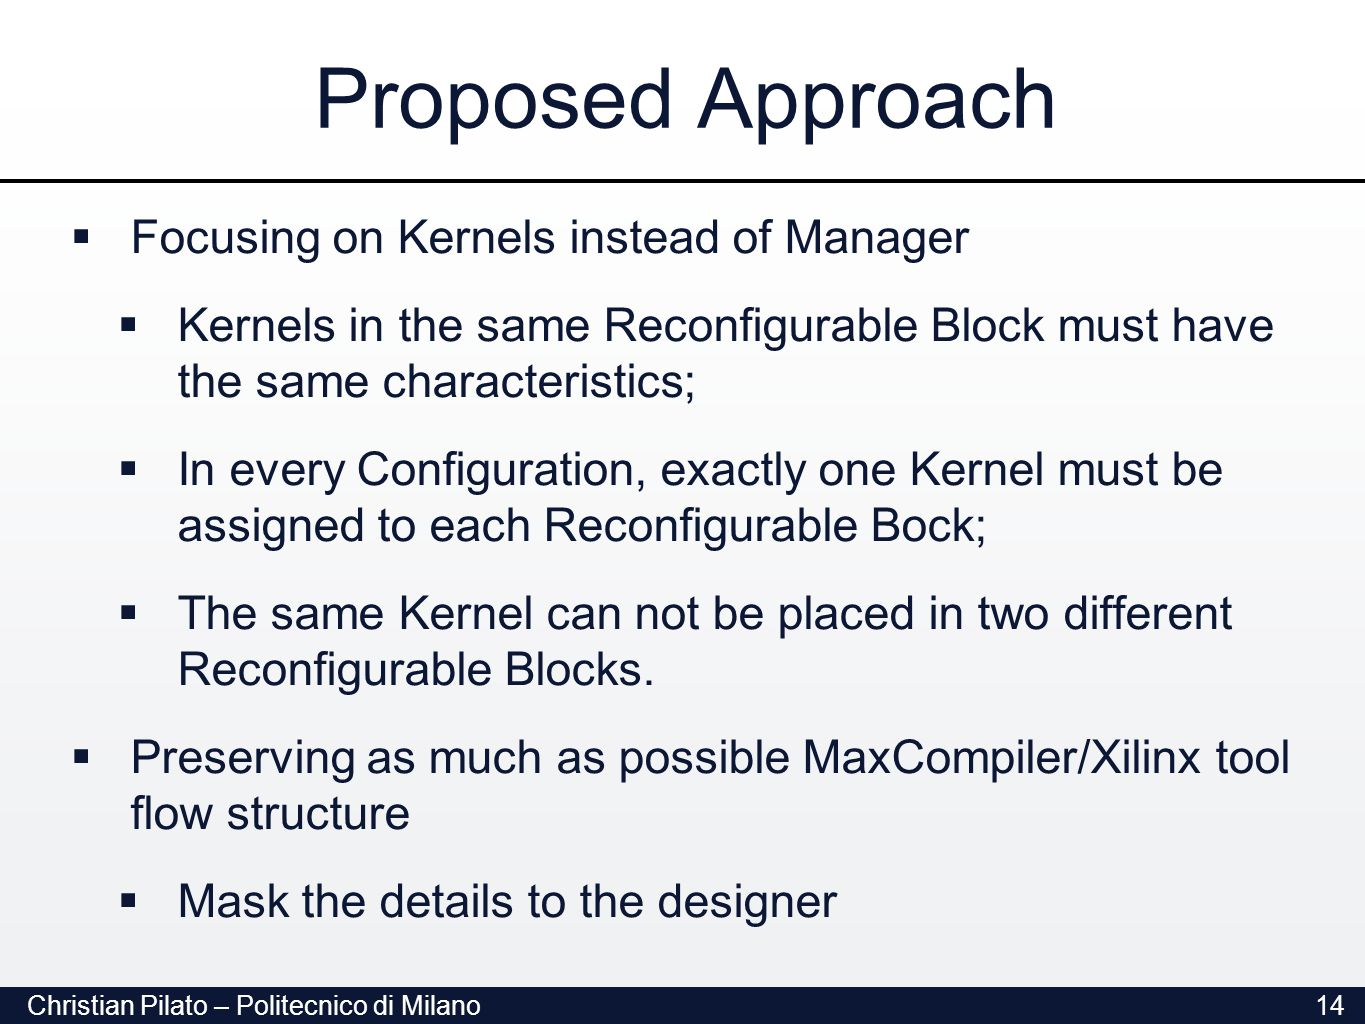 Christian Pilato – Politecnico di Milano Proposed Approach 14  Focusing on Kernels instead of Manager  Kernels in the same Reconfigurable Block must have the same characteristics;  In every Configuration, exactly one Kernel must be assigned to each Reconfigurable Bock;  The same Kernel can not be placed in two different Reconfigurable Blocks.